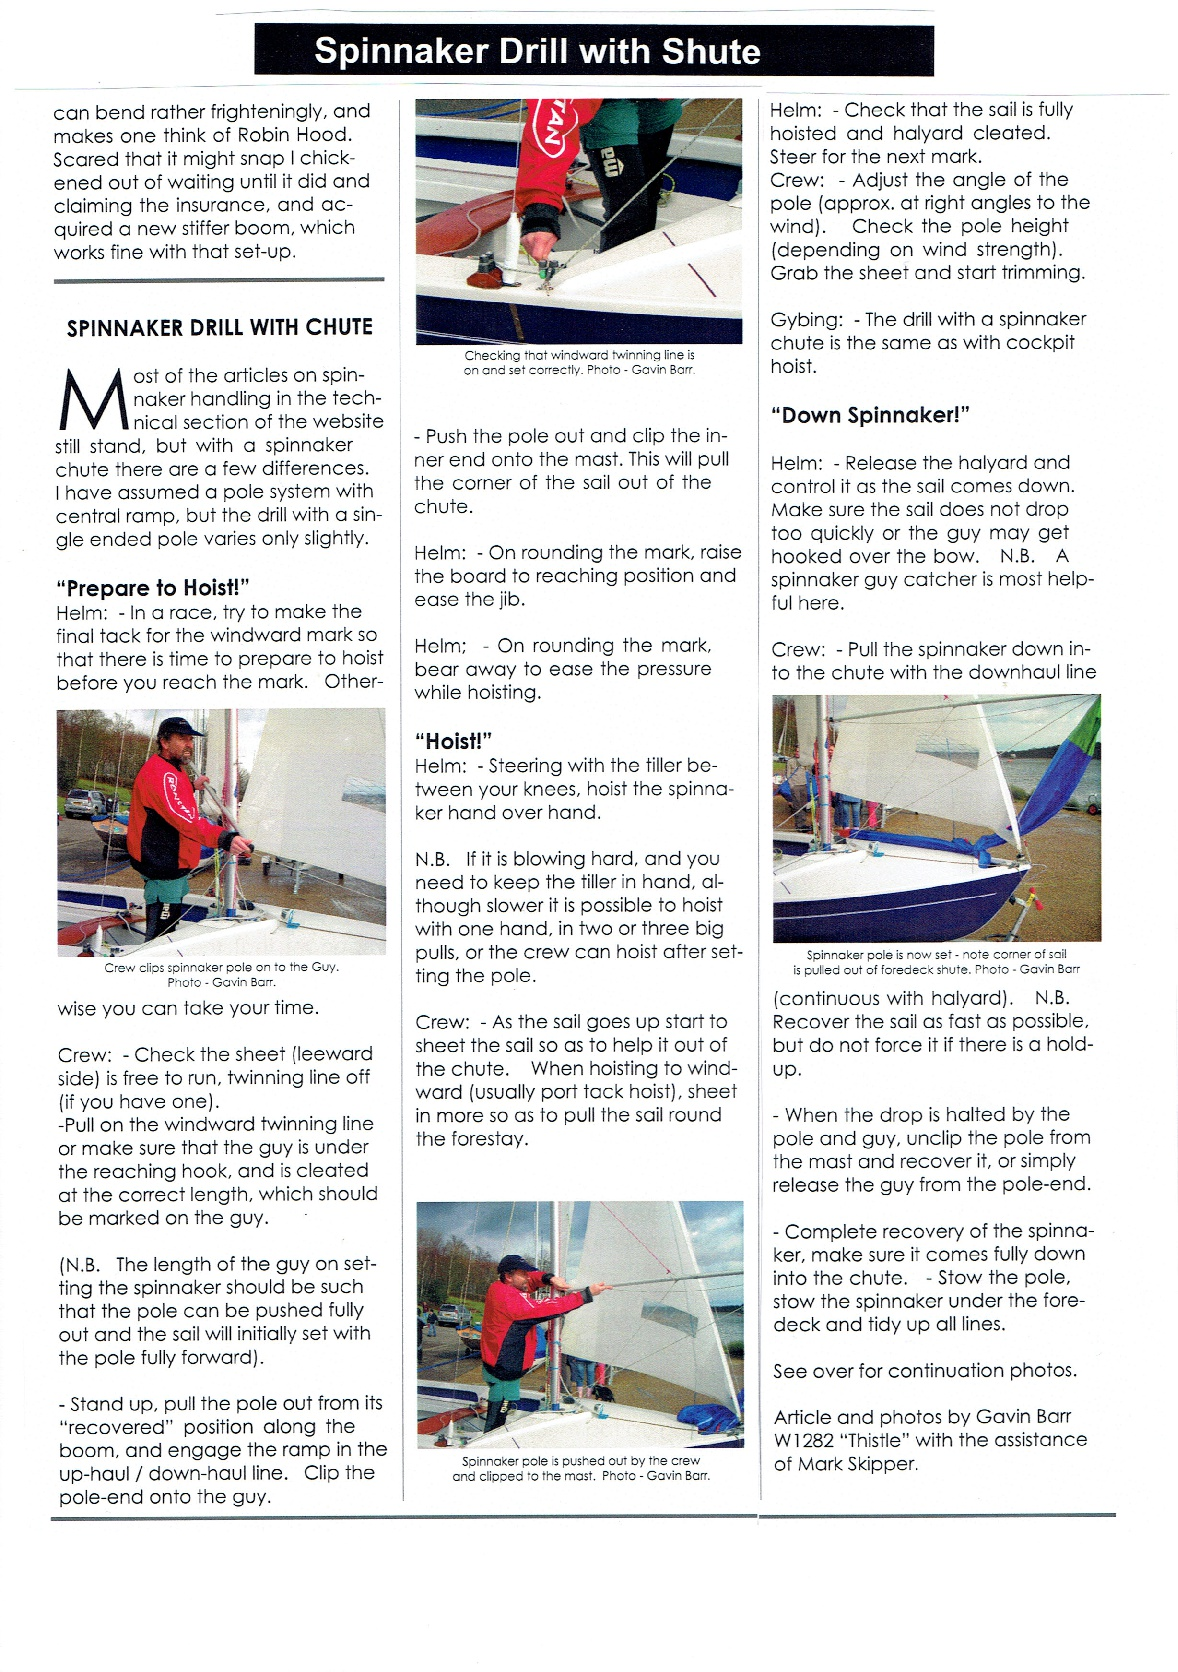 Spinnaker with Chute p1